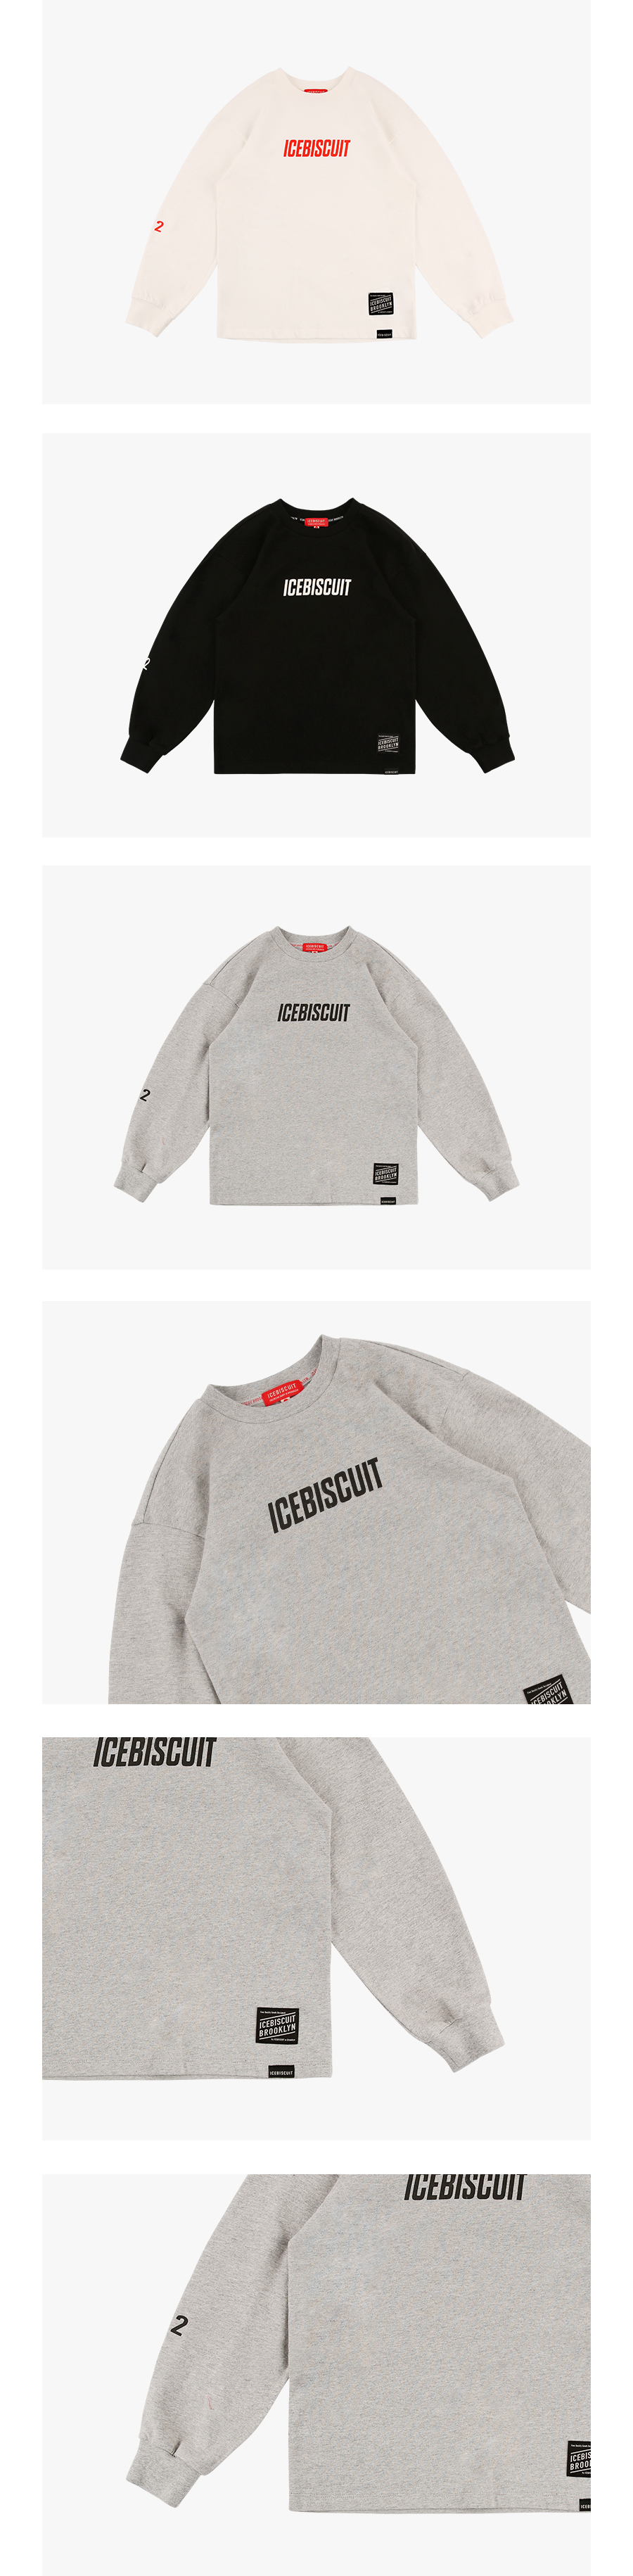 Icebiscuit letter long sleeve tee 상세 이미지